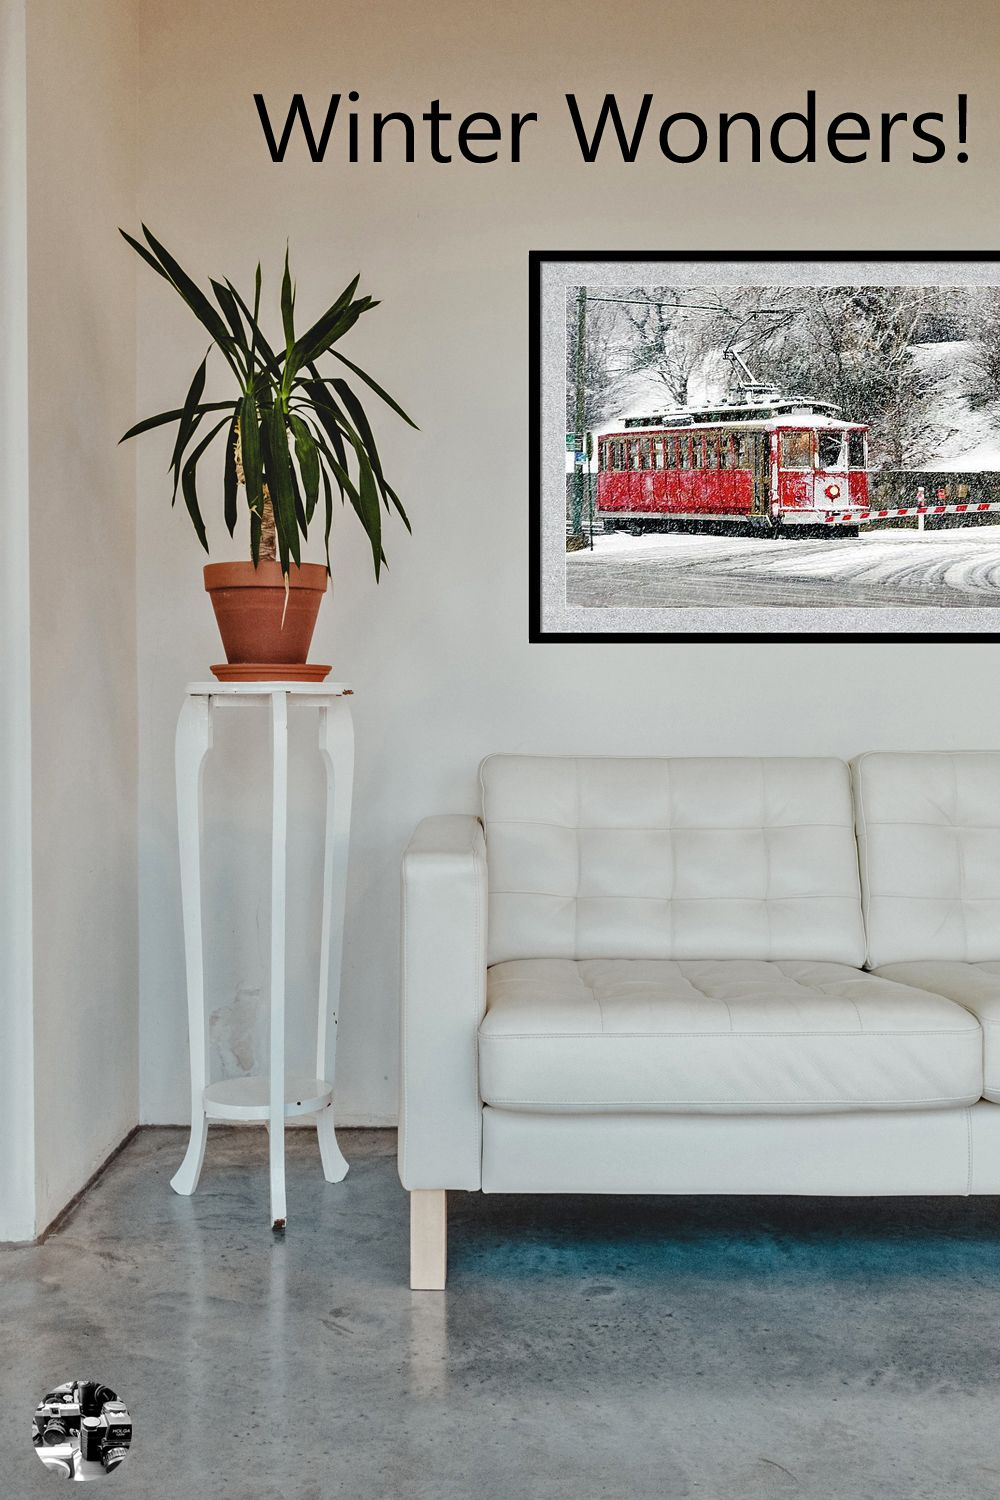 A red trolley, in a snowstorm poster. Shown in a room setting, evokes nostalgia for a simpler time. photo:Bernard Hermant on unsplash #poster #art #trolley #travel #winter #transportation #photography #walldecor #placestovisit #placestosee #lifestyle #memphis #Diyhomedecor #Masterbedroomideas #Aptdecorating #Decorating #interiorDecorating #snow #blizzard #tennessee